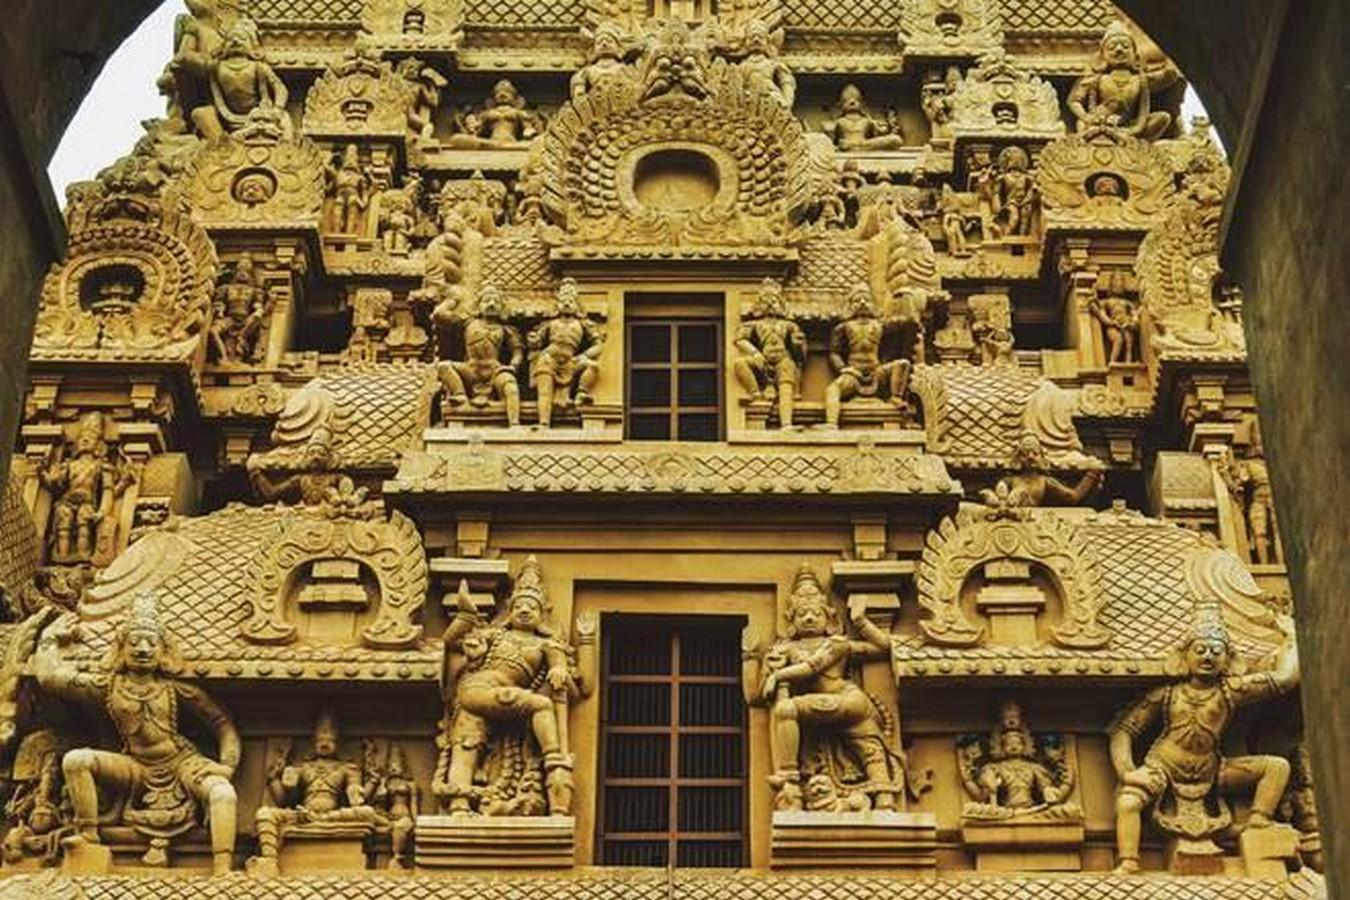 Evolution of ornamentation in Indian architecture - Sheet7